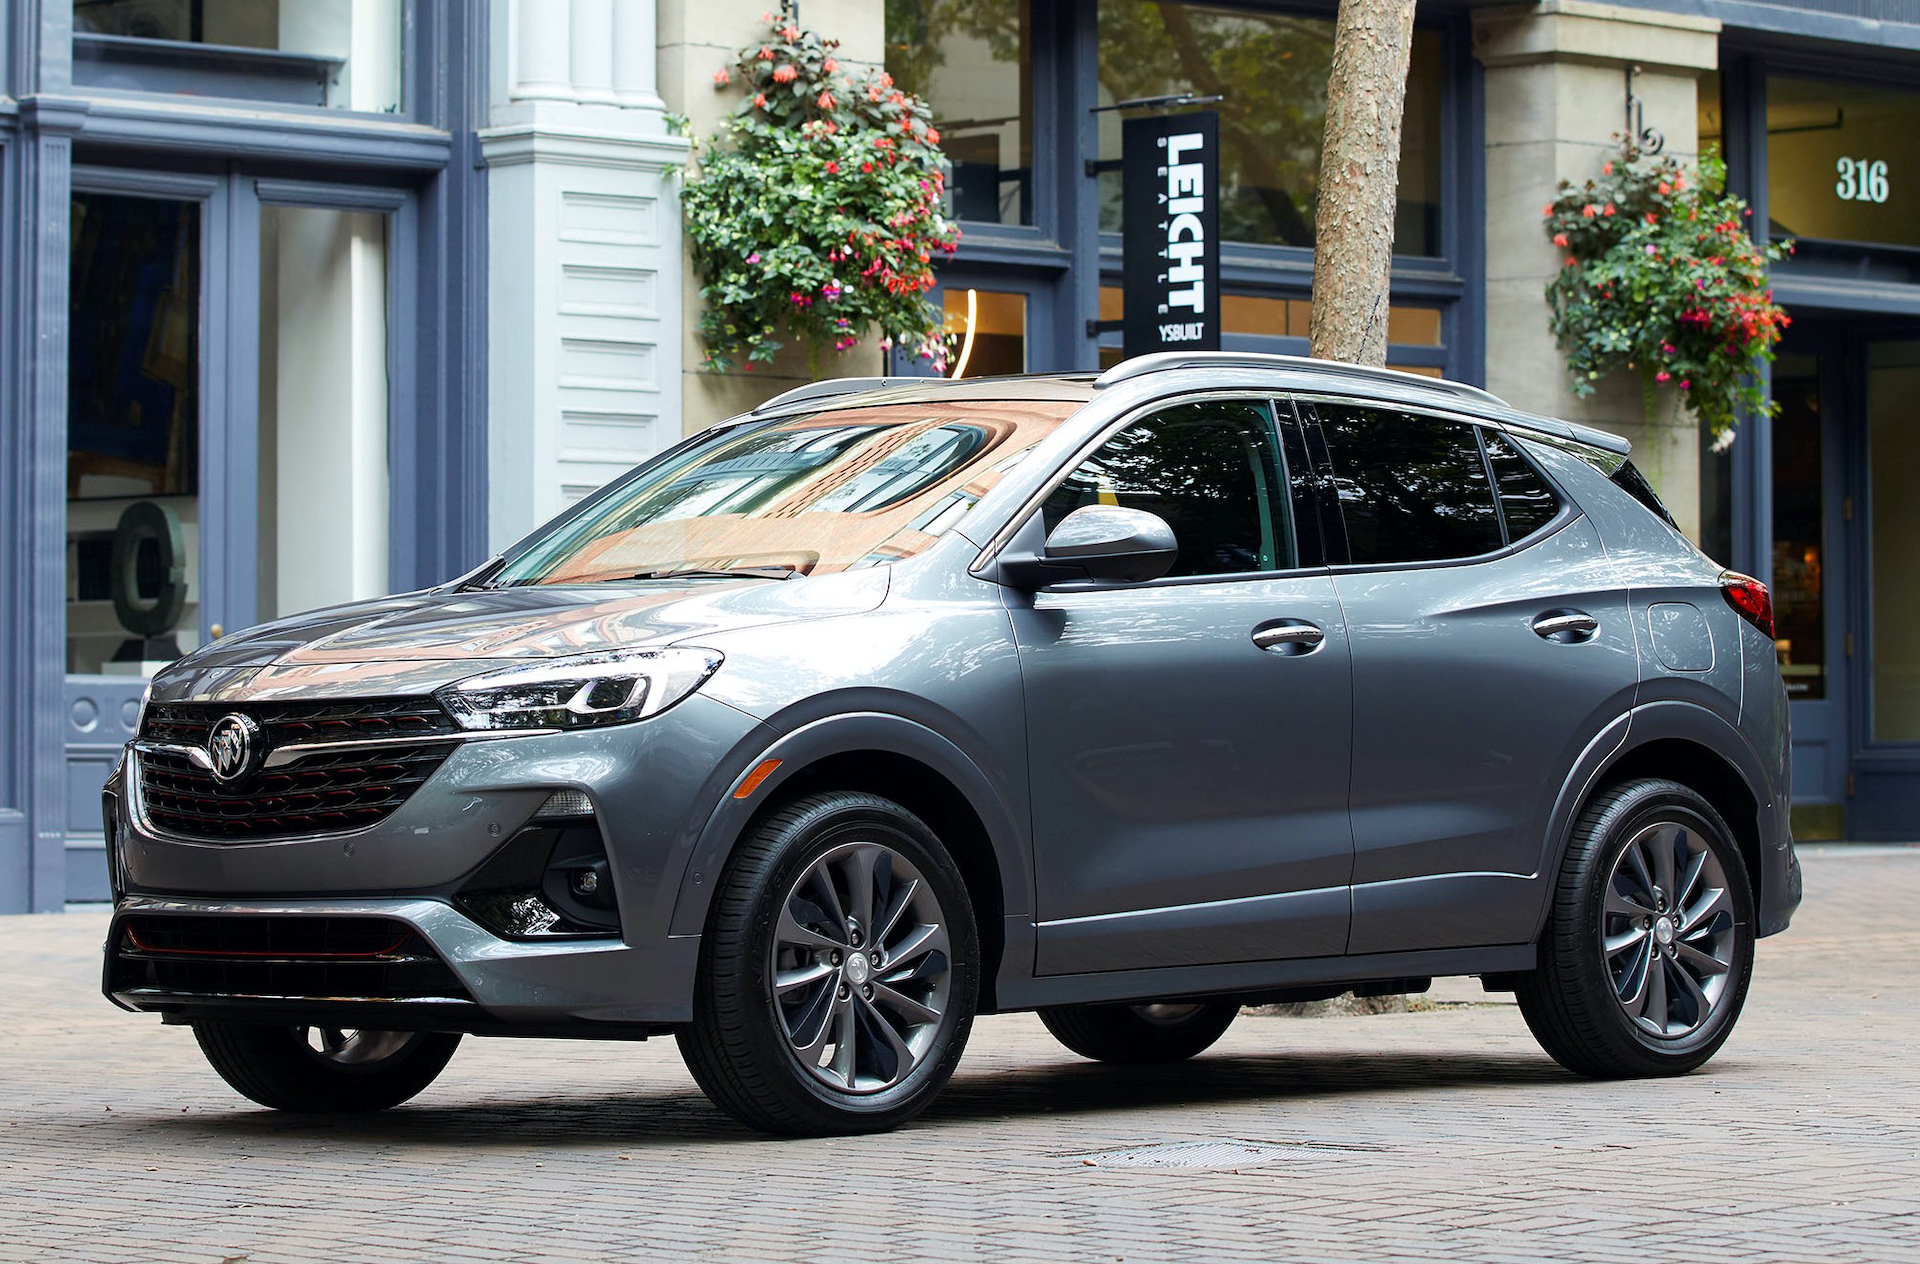 2021 Buick Encore Review, Ratings, Specs, Prices, And Photos How Long Is The 2021 Buick Encore Gx